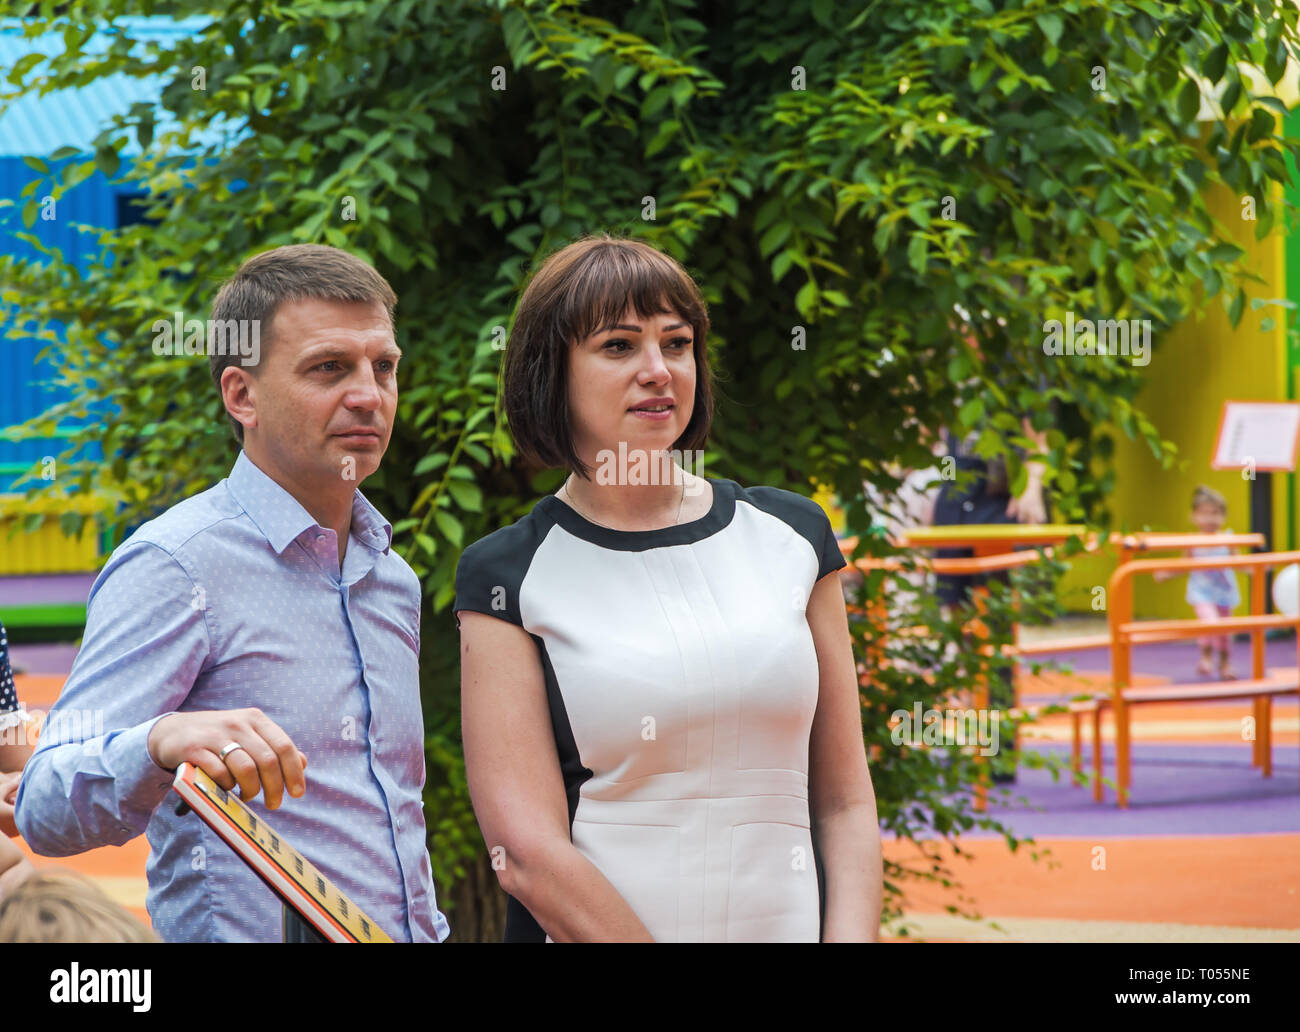 Dnipro, Ukraine - June 27, 2018: Chairman of the Dnepropetrovsk Regional Council Gleb Prigunov and People's Deputy of Ukraine Rychkova Tatyana - Stock Image